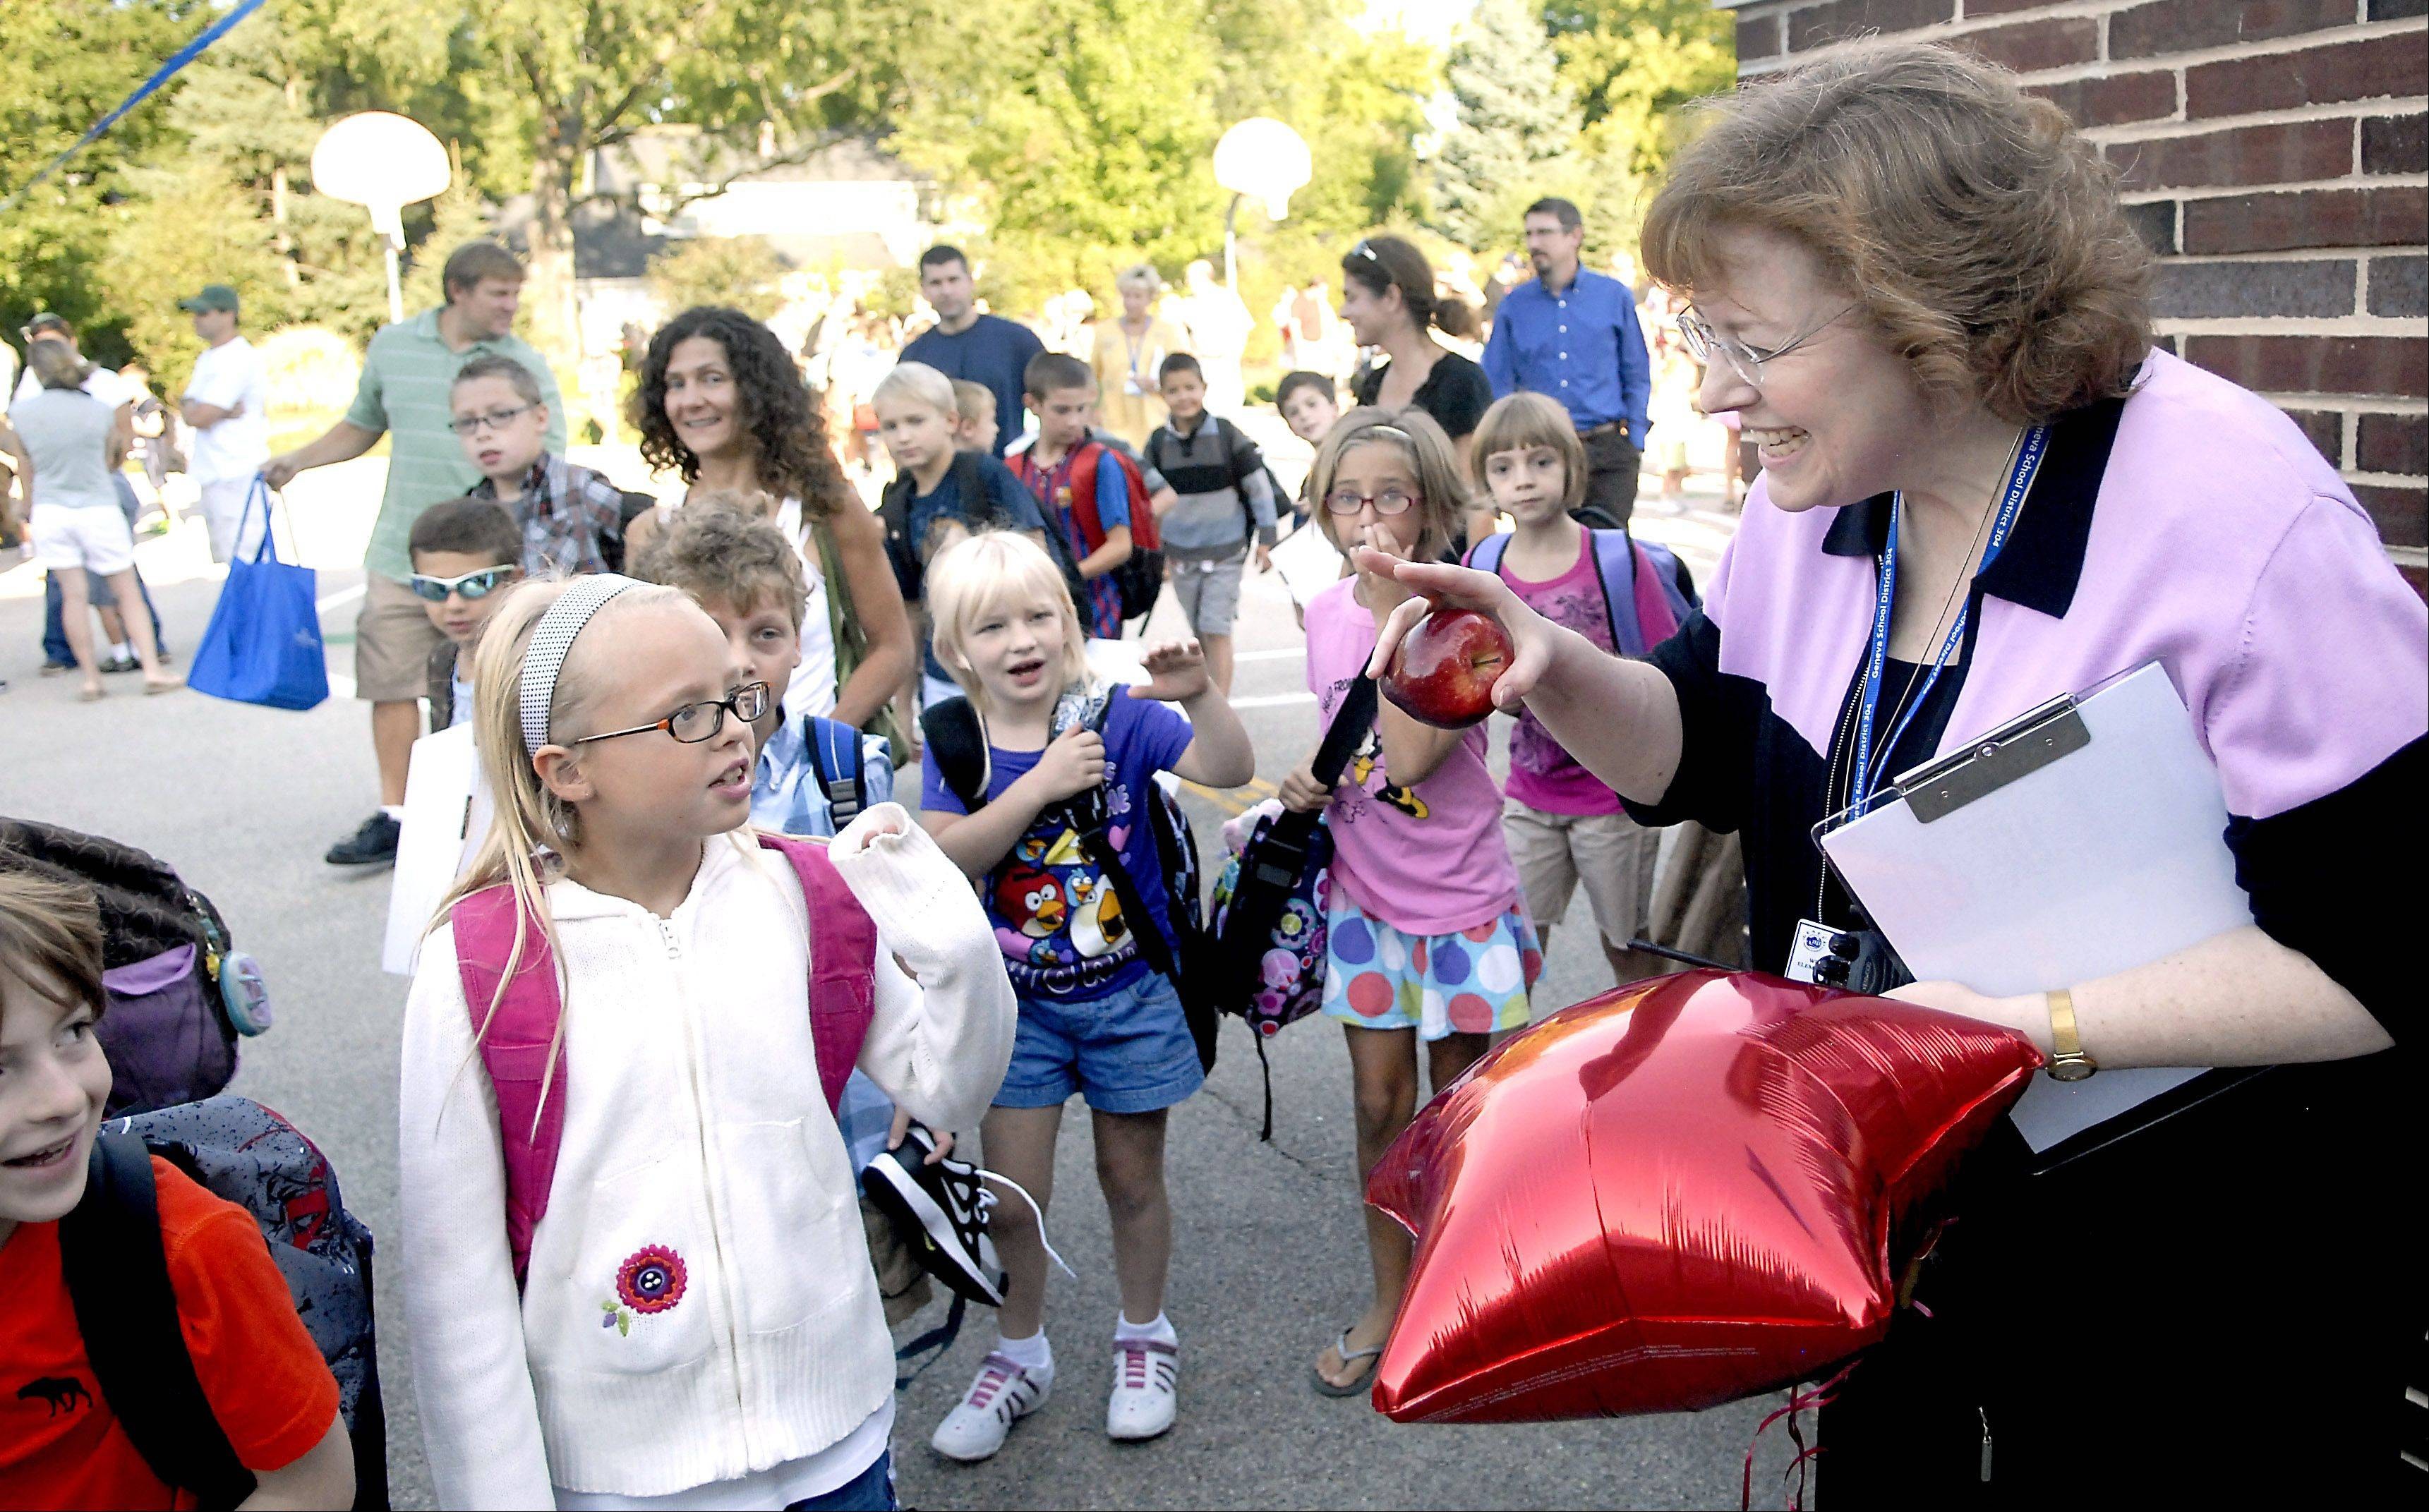 Clutching her first apple of the year, Williamsburg Elementary School principal Julie Dye greets and waves to students as they file into the building for the first day of school in Geneva on Wednesday.